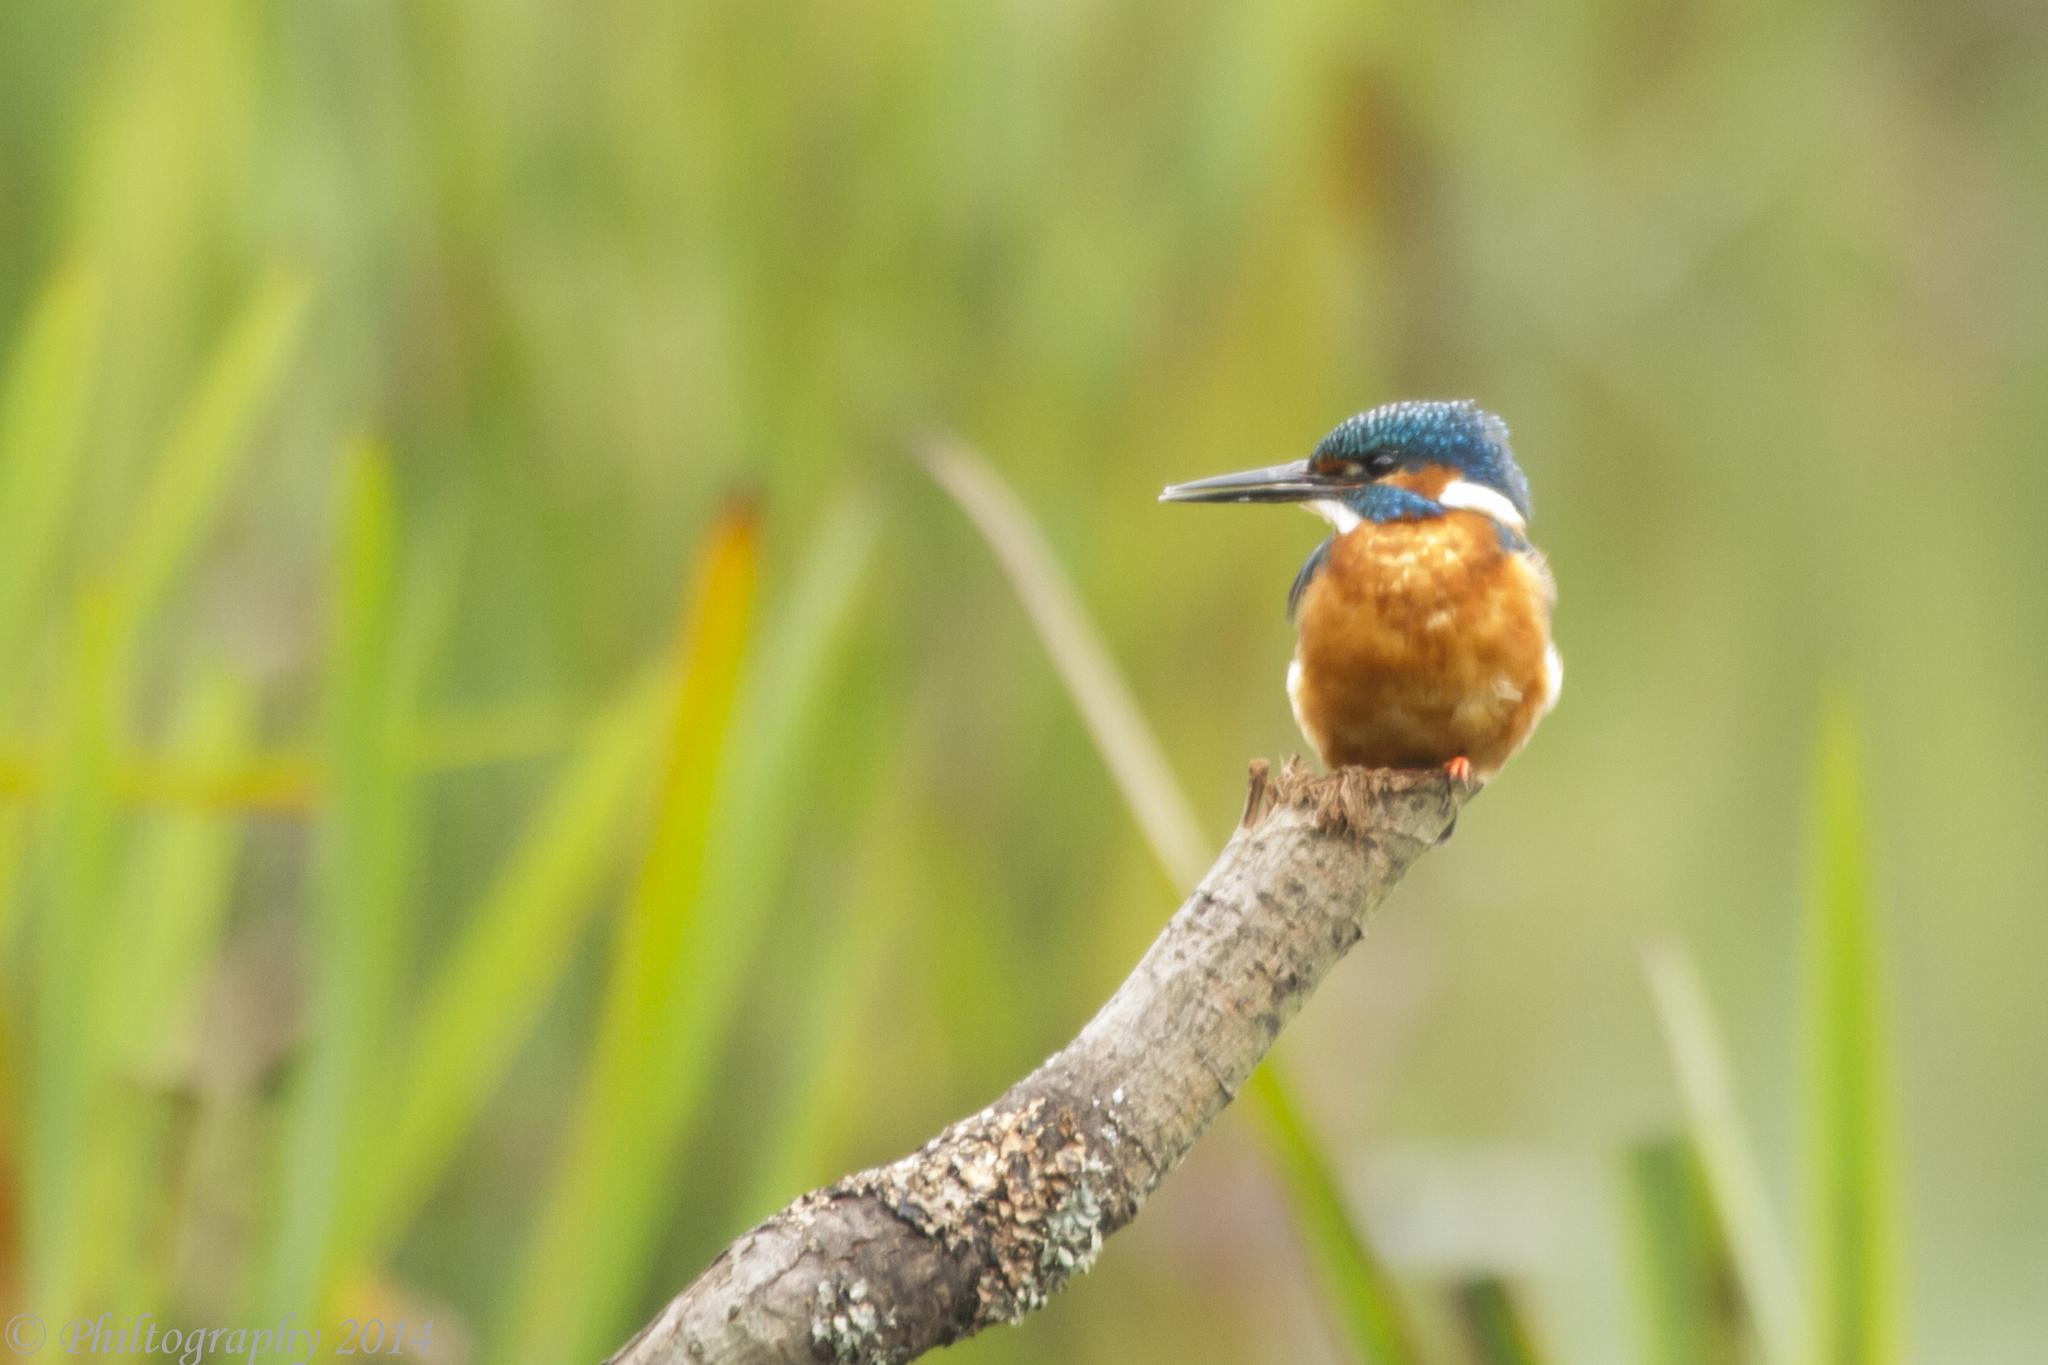 Kingfisher (saved in Lightroom) by Philtography